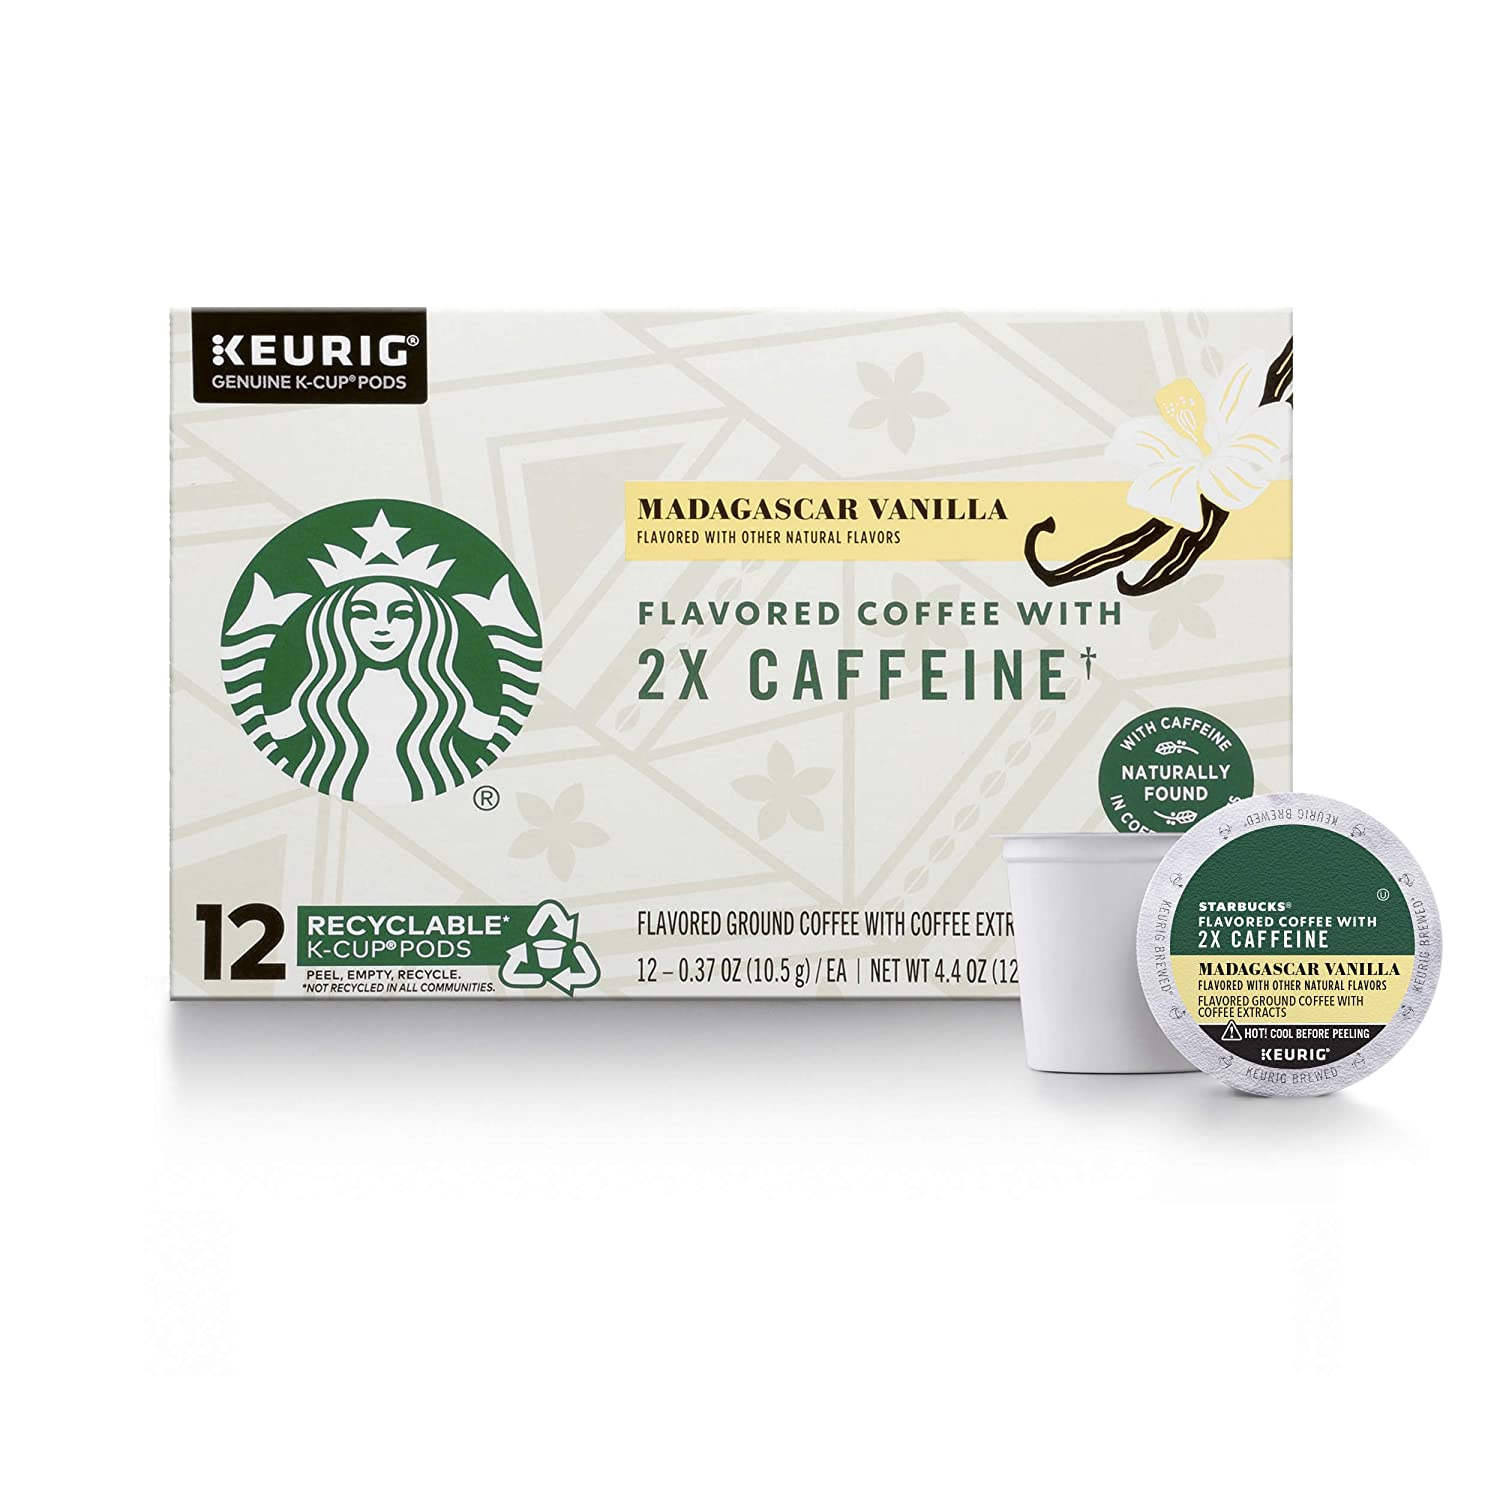 Starbucks Flavored K-Cup Coffee Pods with 2X Caffeine — Madagascar Vanilla for Keurig Brewers — 4 boxes (48 pods total)